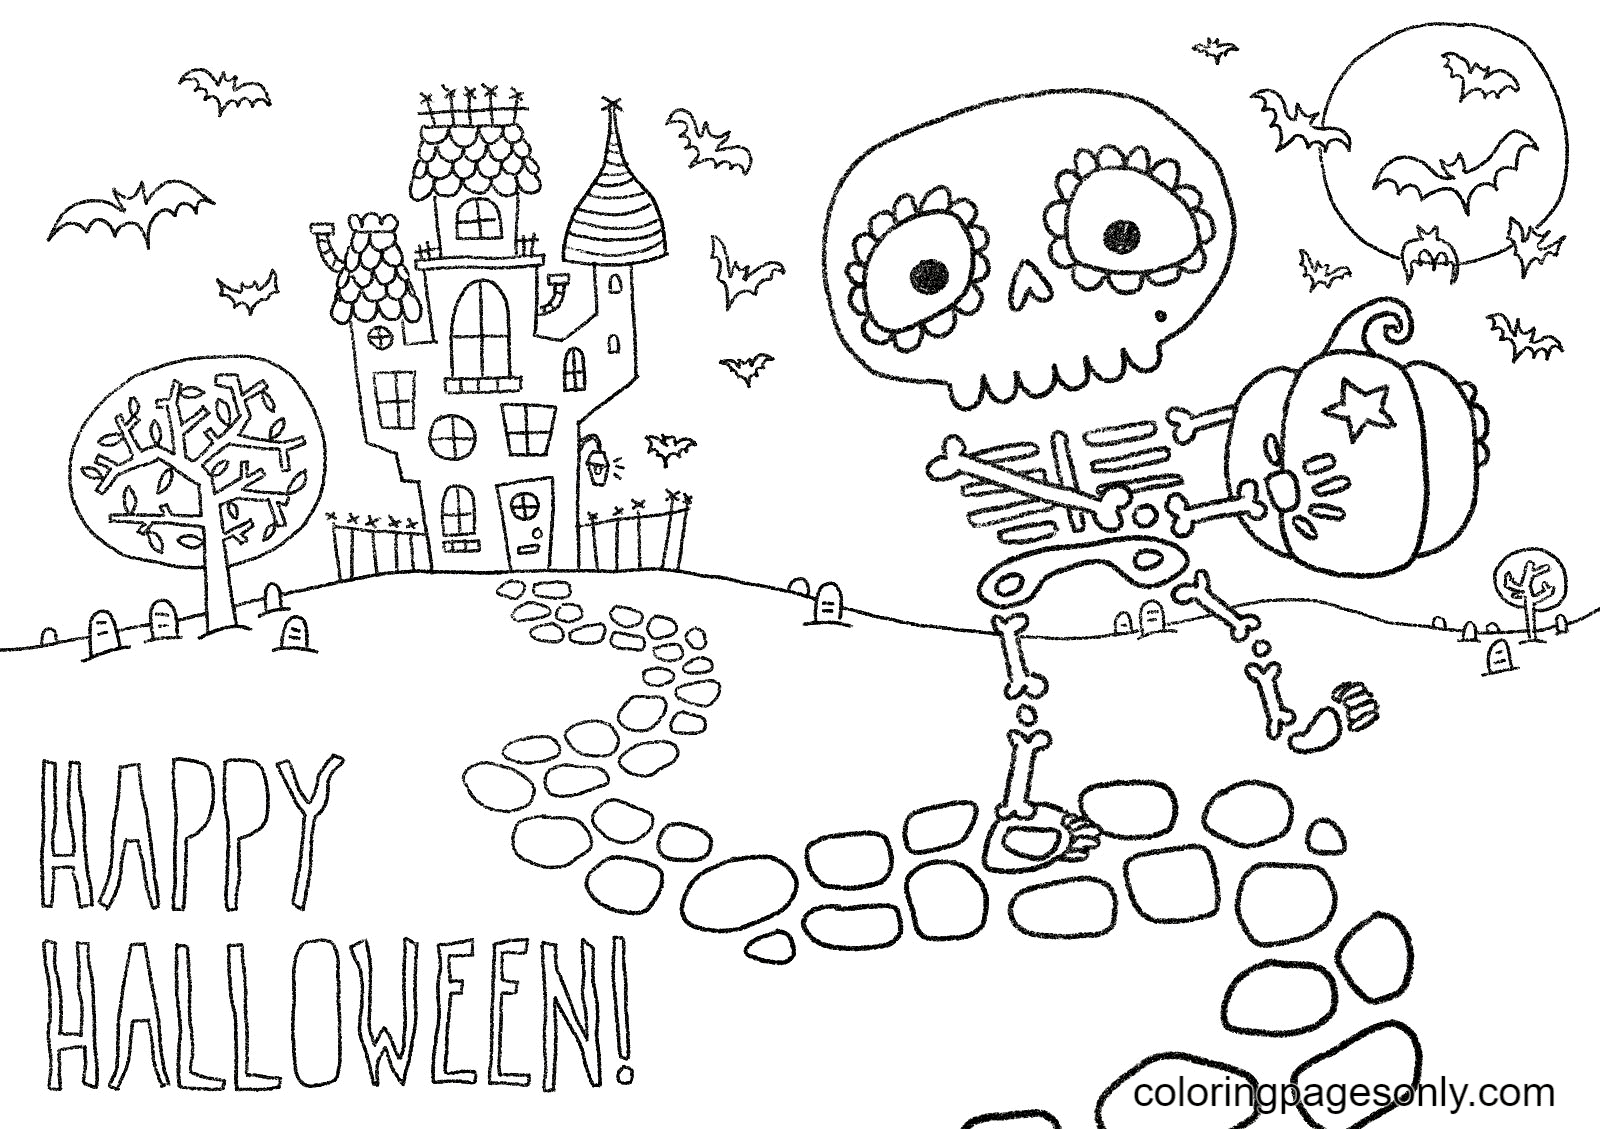 Skeleton with Pumpkin Came Out of the Castle Coloring Page